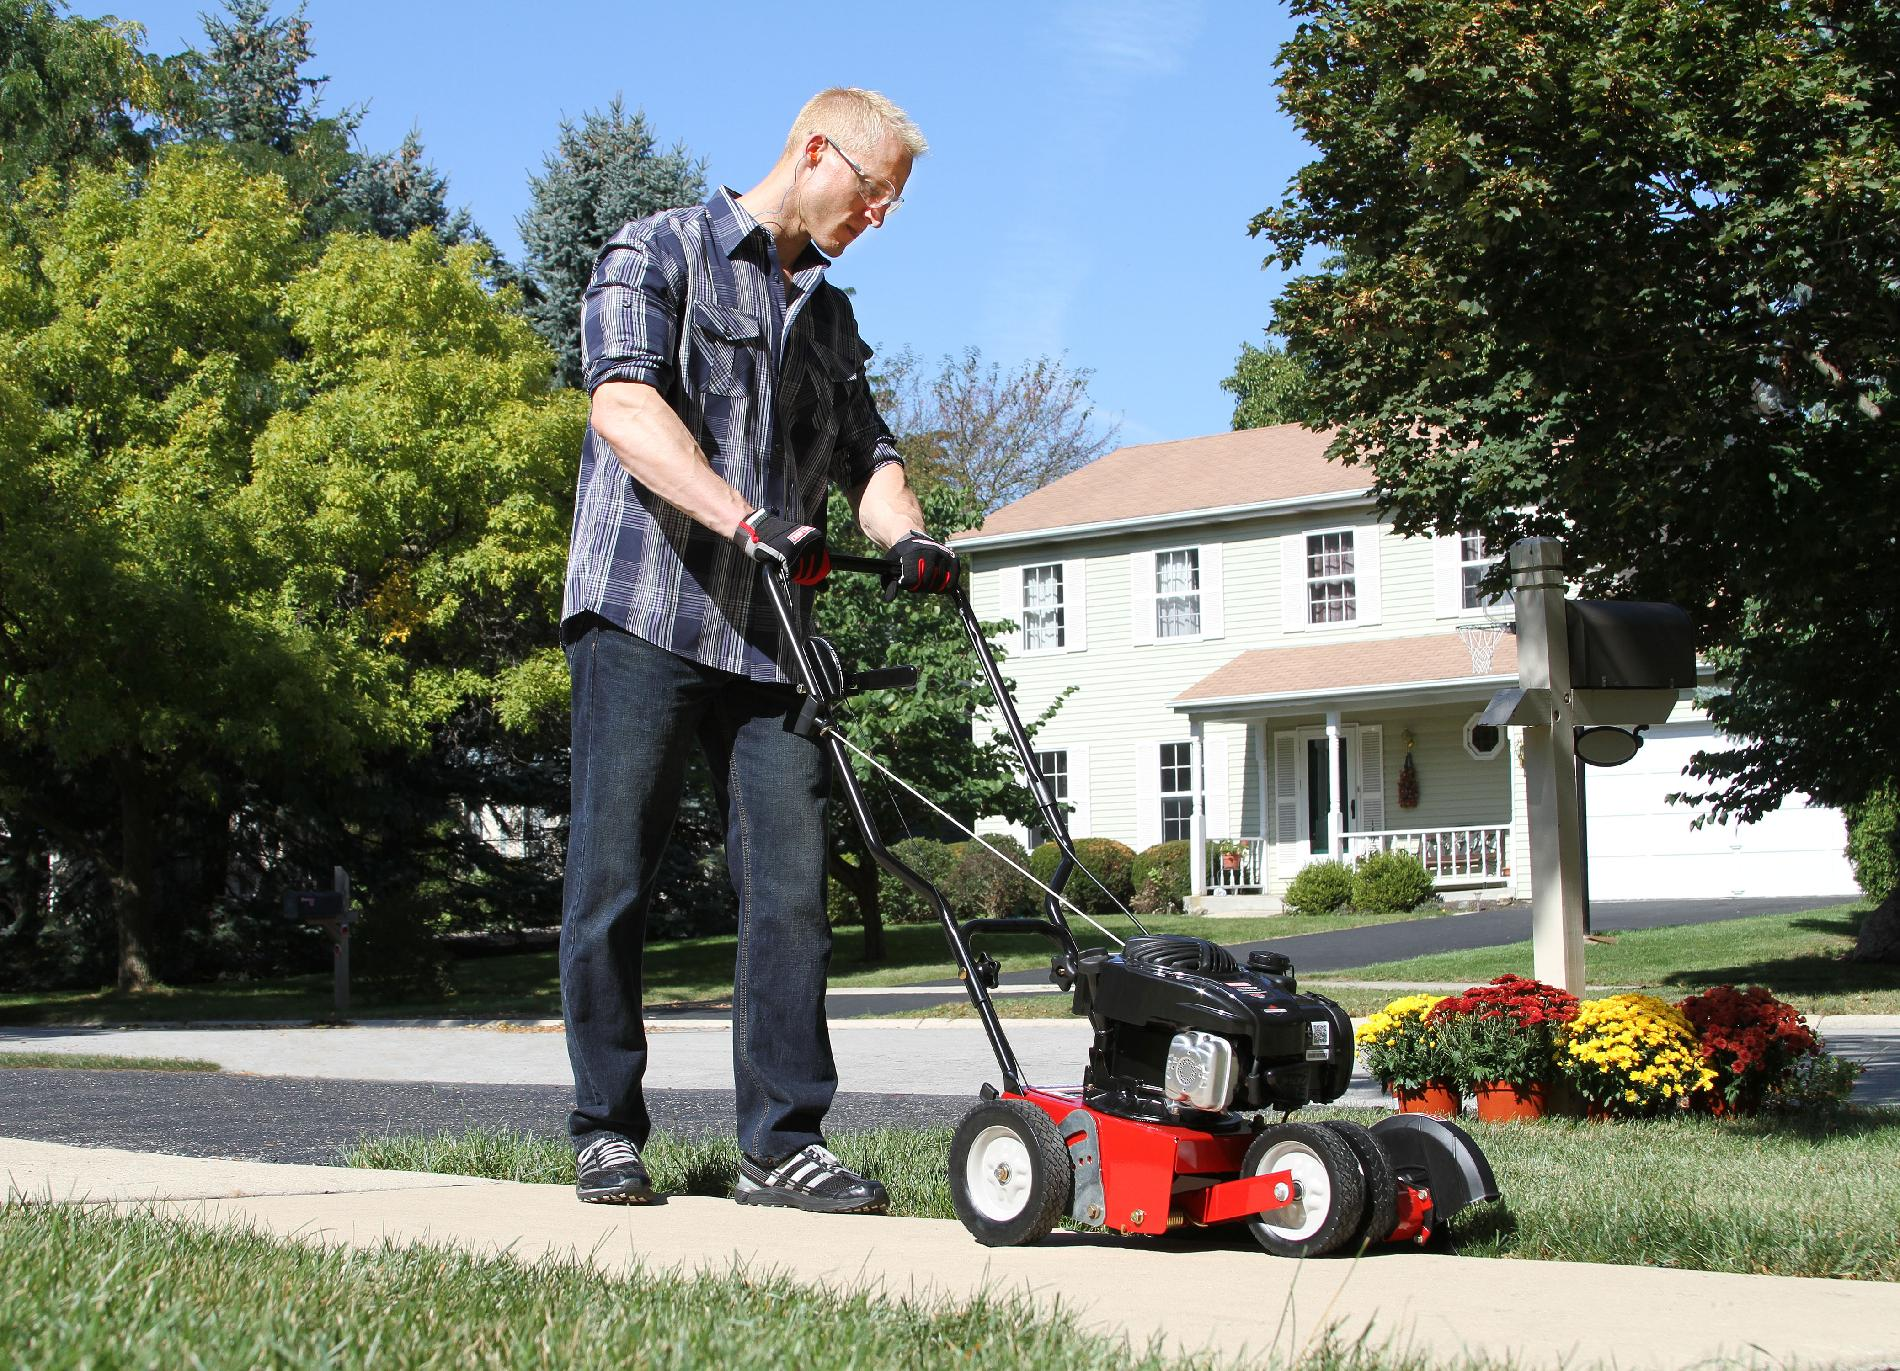 Craftsman 140cc Gas Edger - 50 State